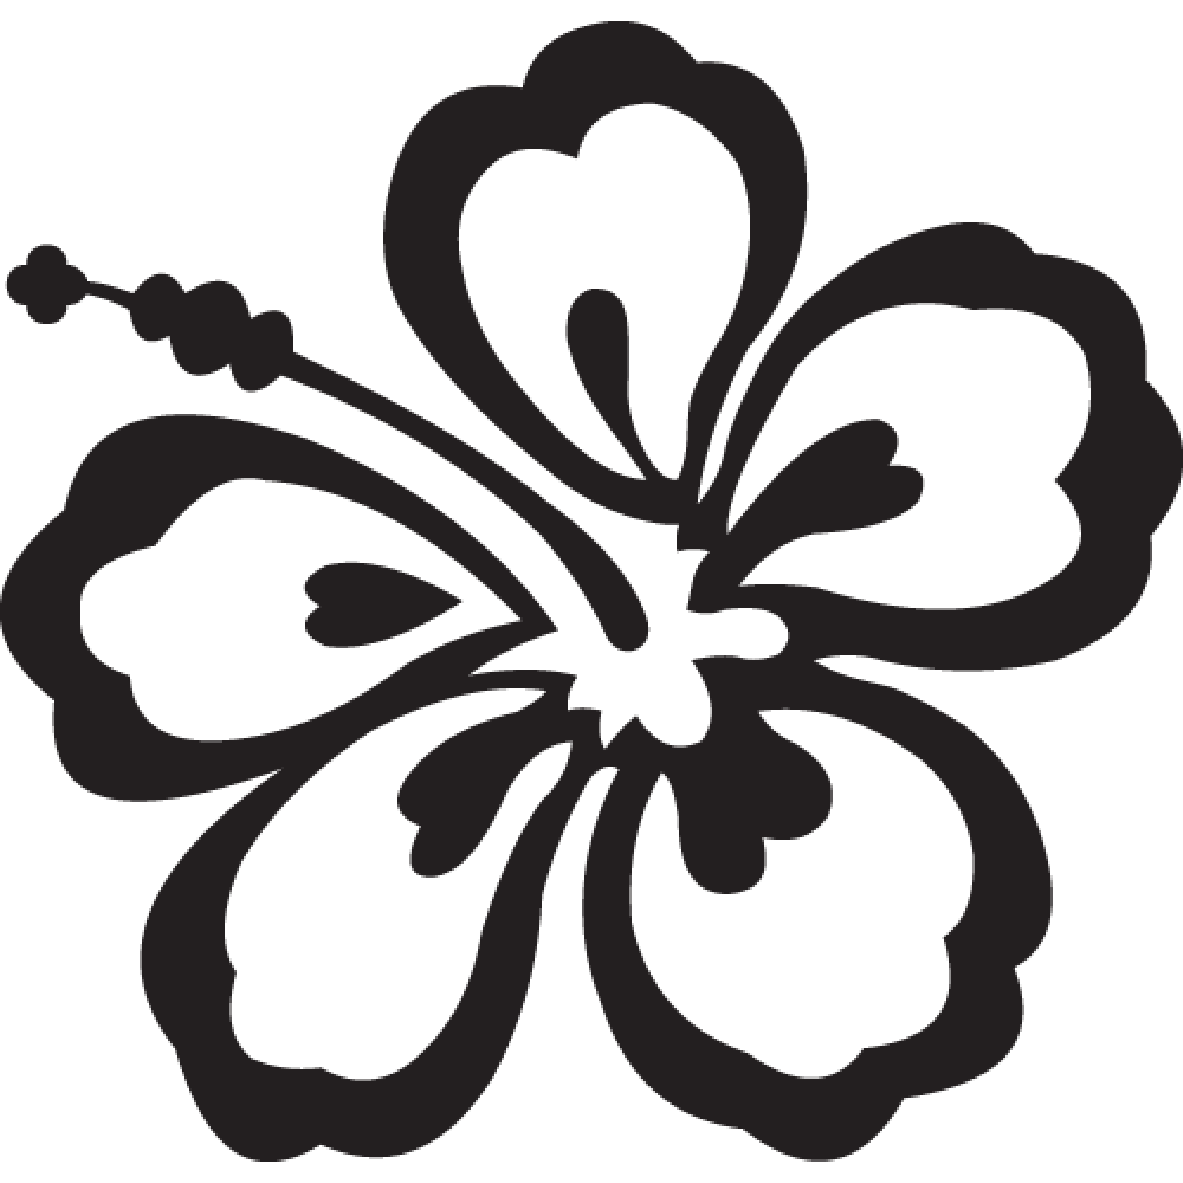 Flower clipart black png clipart free stock Black And White Flower Clipart - Clipart Kid clipart free stock